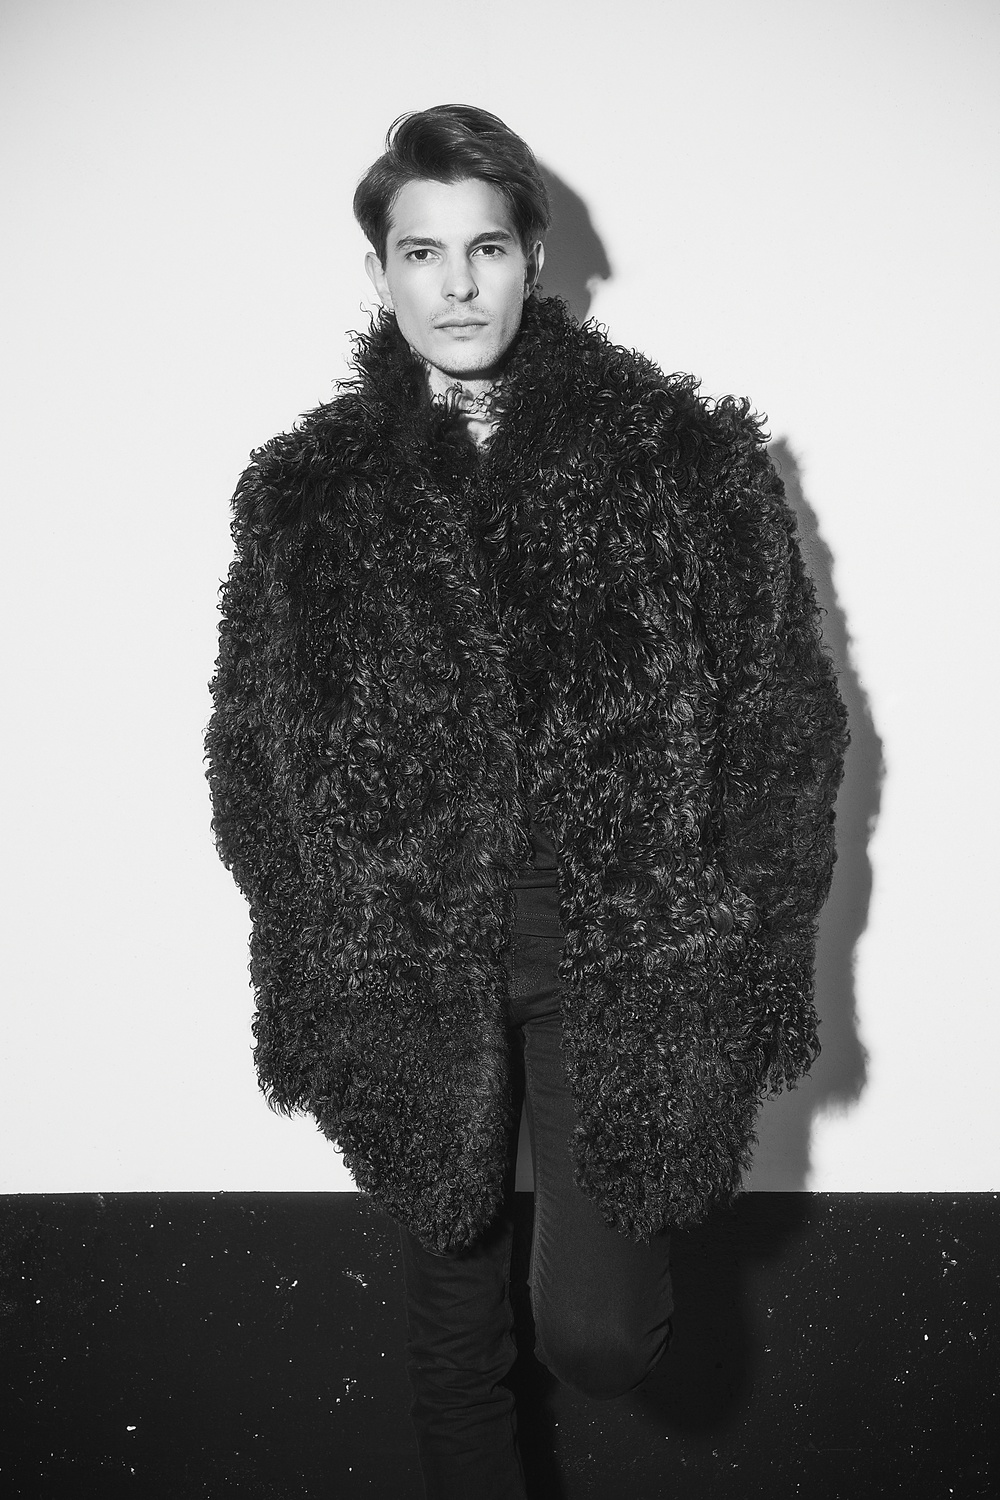 Shearling 2015 Carol Gallacher designer for HiSO Styling: Joanna Plisko, Photography: Mike Lewis, Hair and Makeup: Taca Ozawa